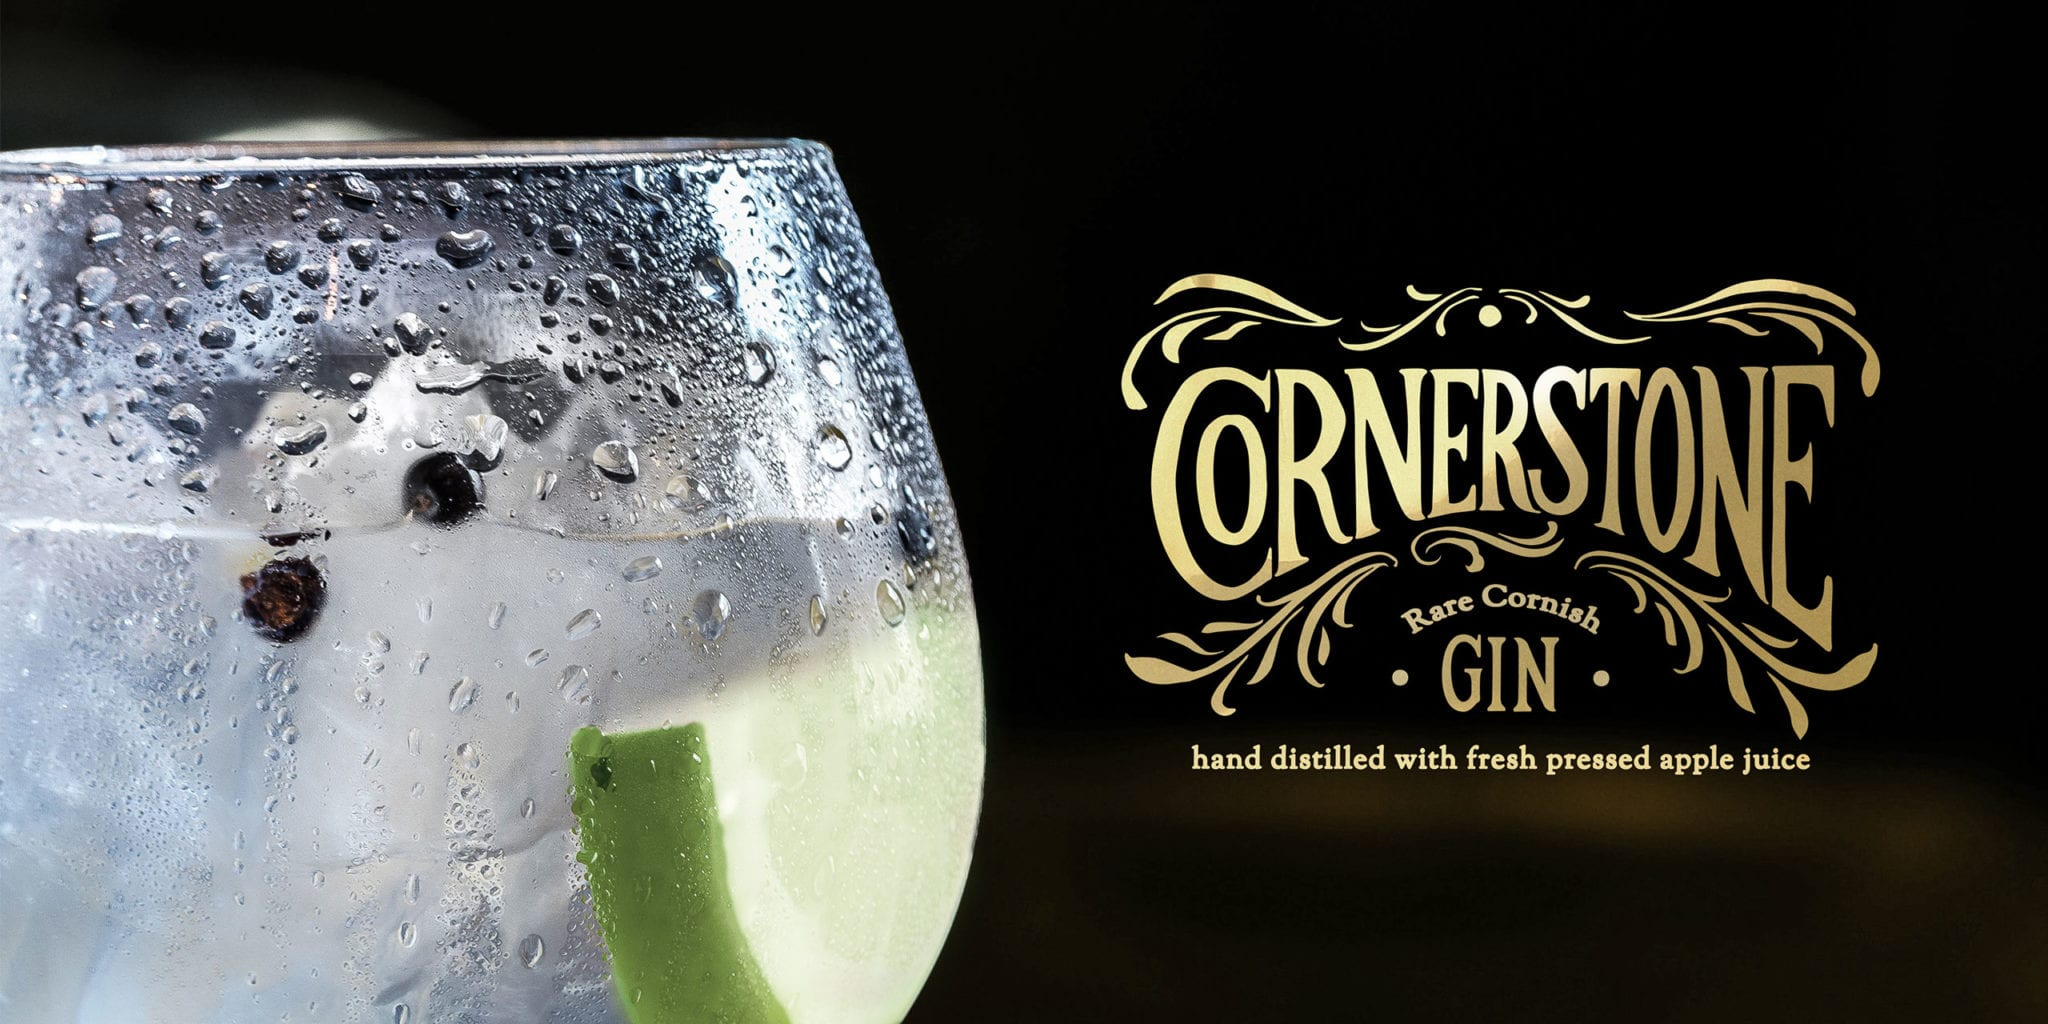 A glass of gin with apple in it along with the Cornerstone gin branding overlaid to the right